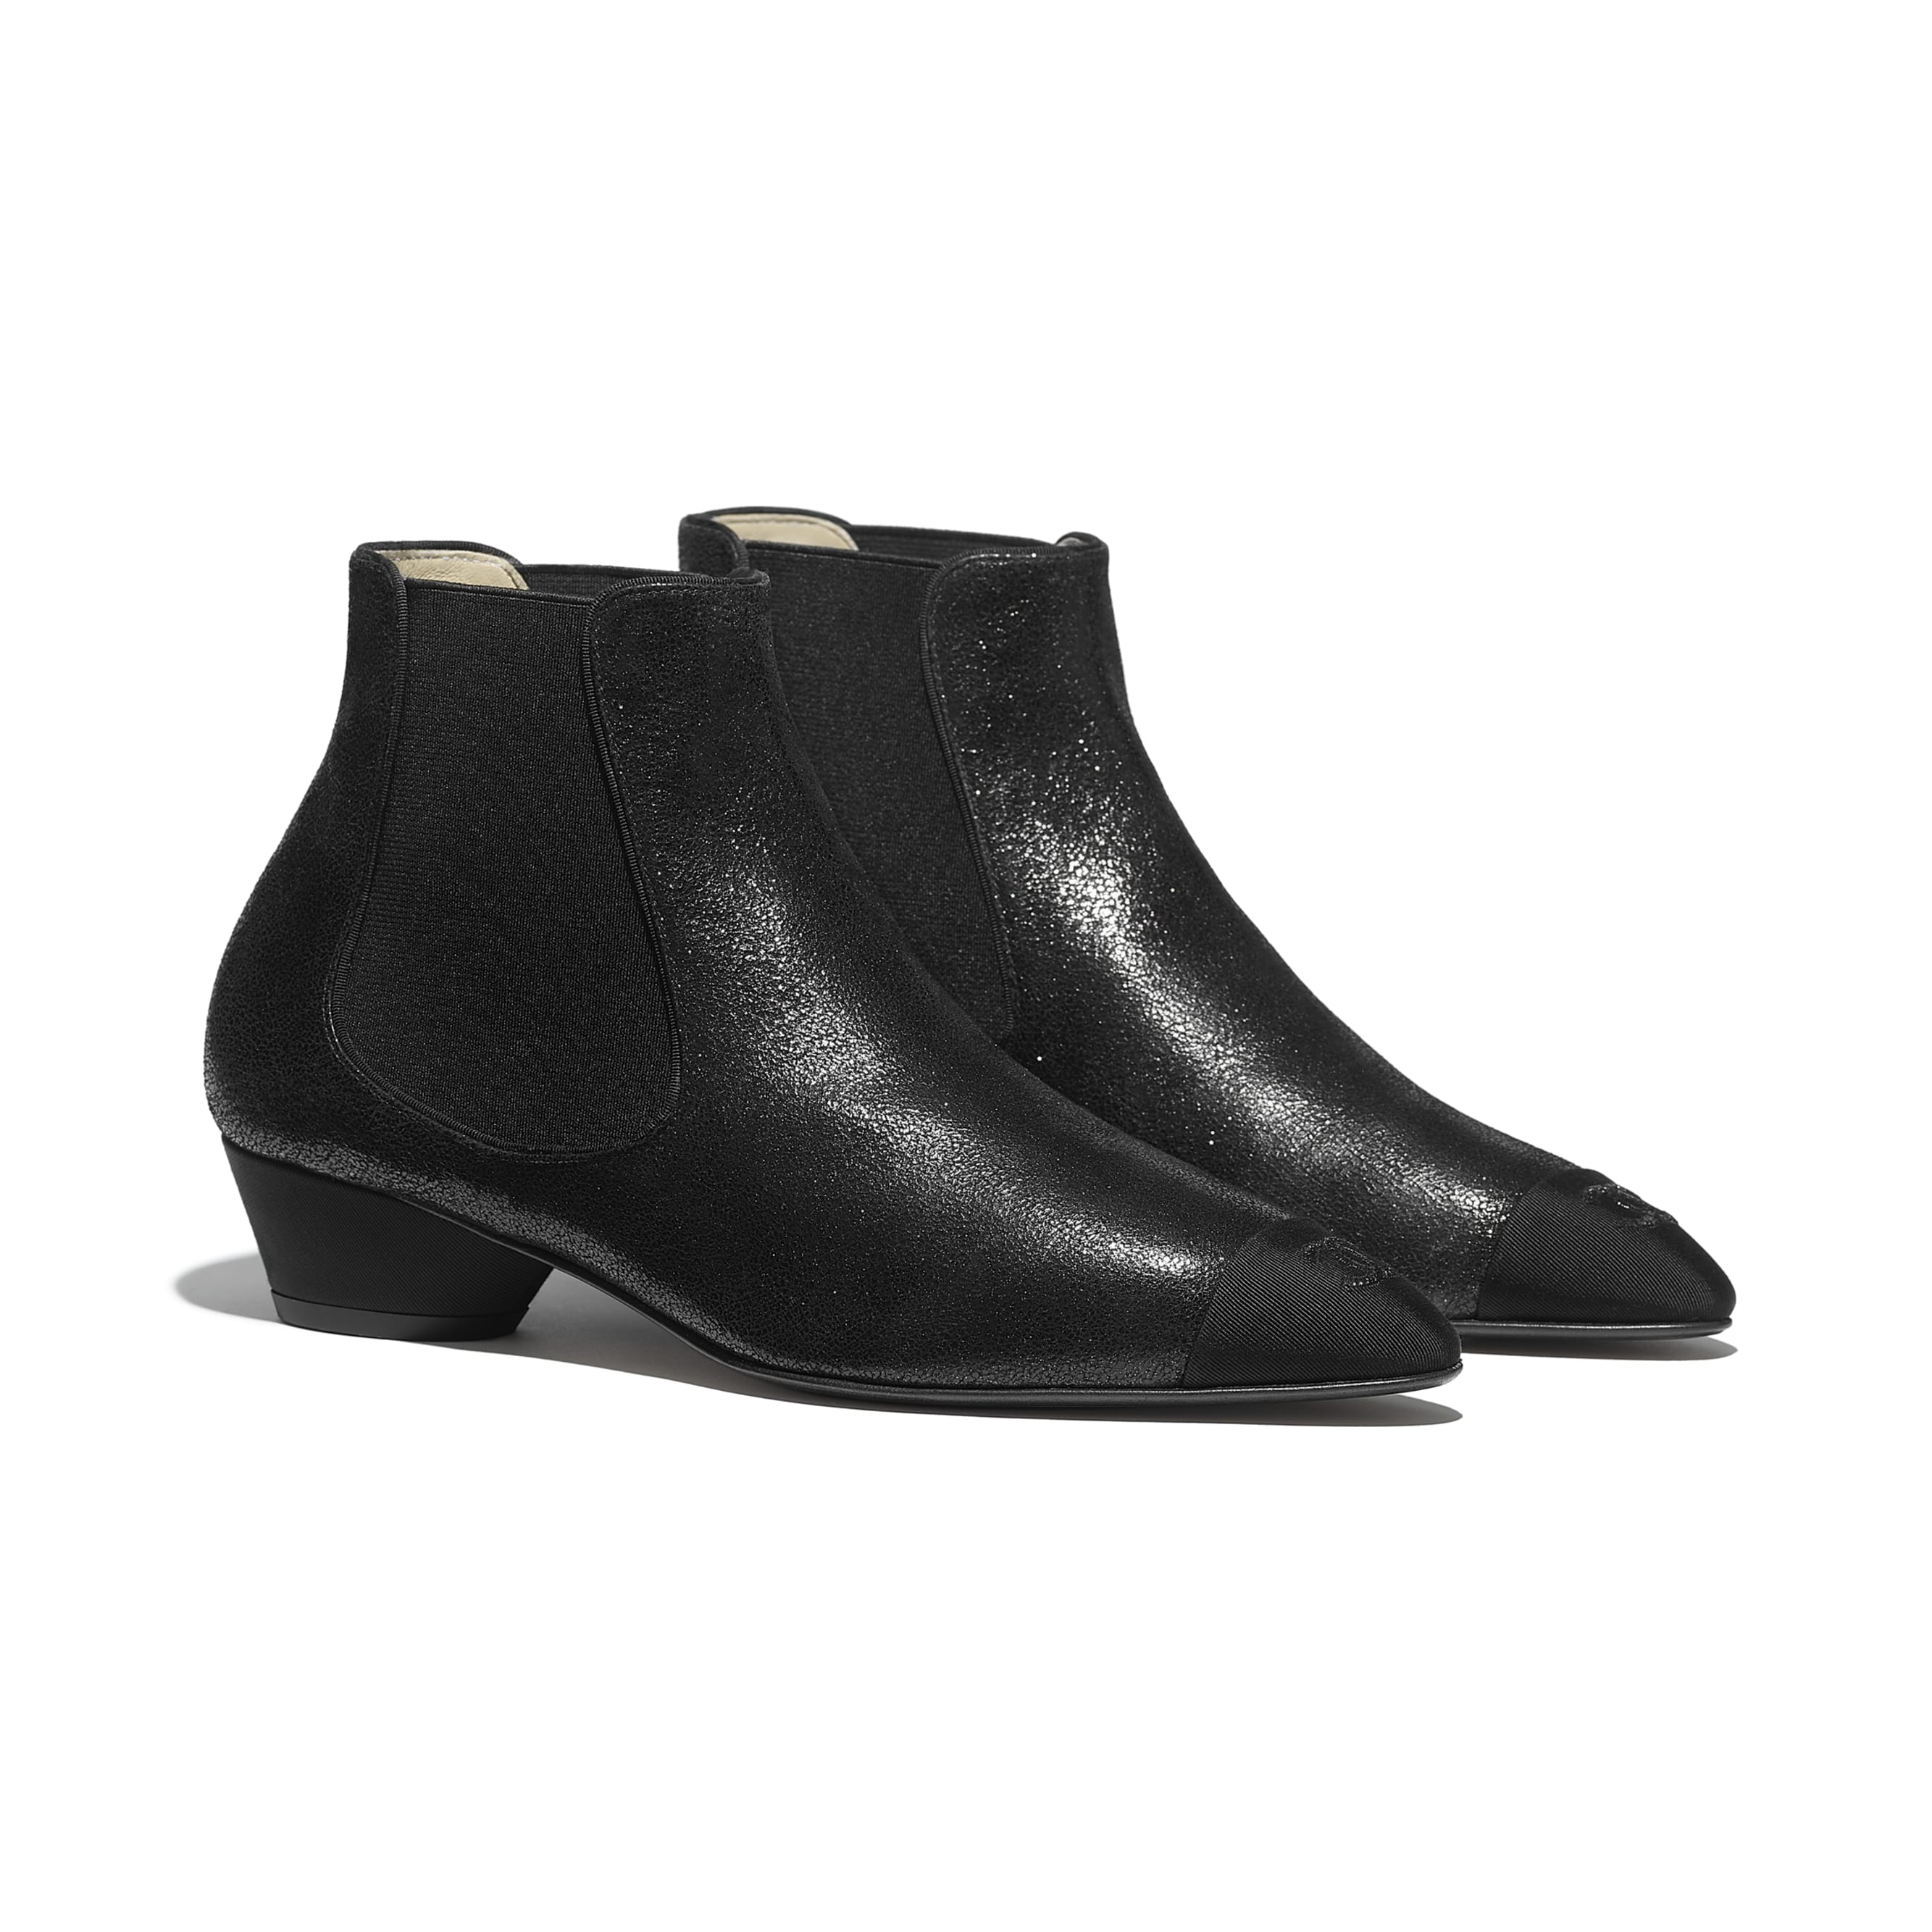 Ankle Boots - Black - Goatskin & Grosgrain - Alternative view - see standard sized version